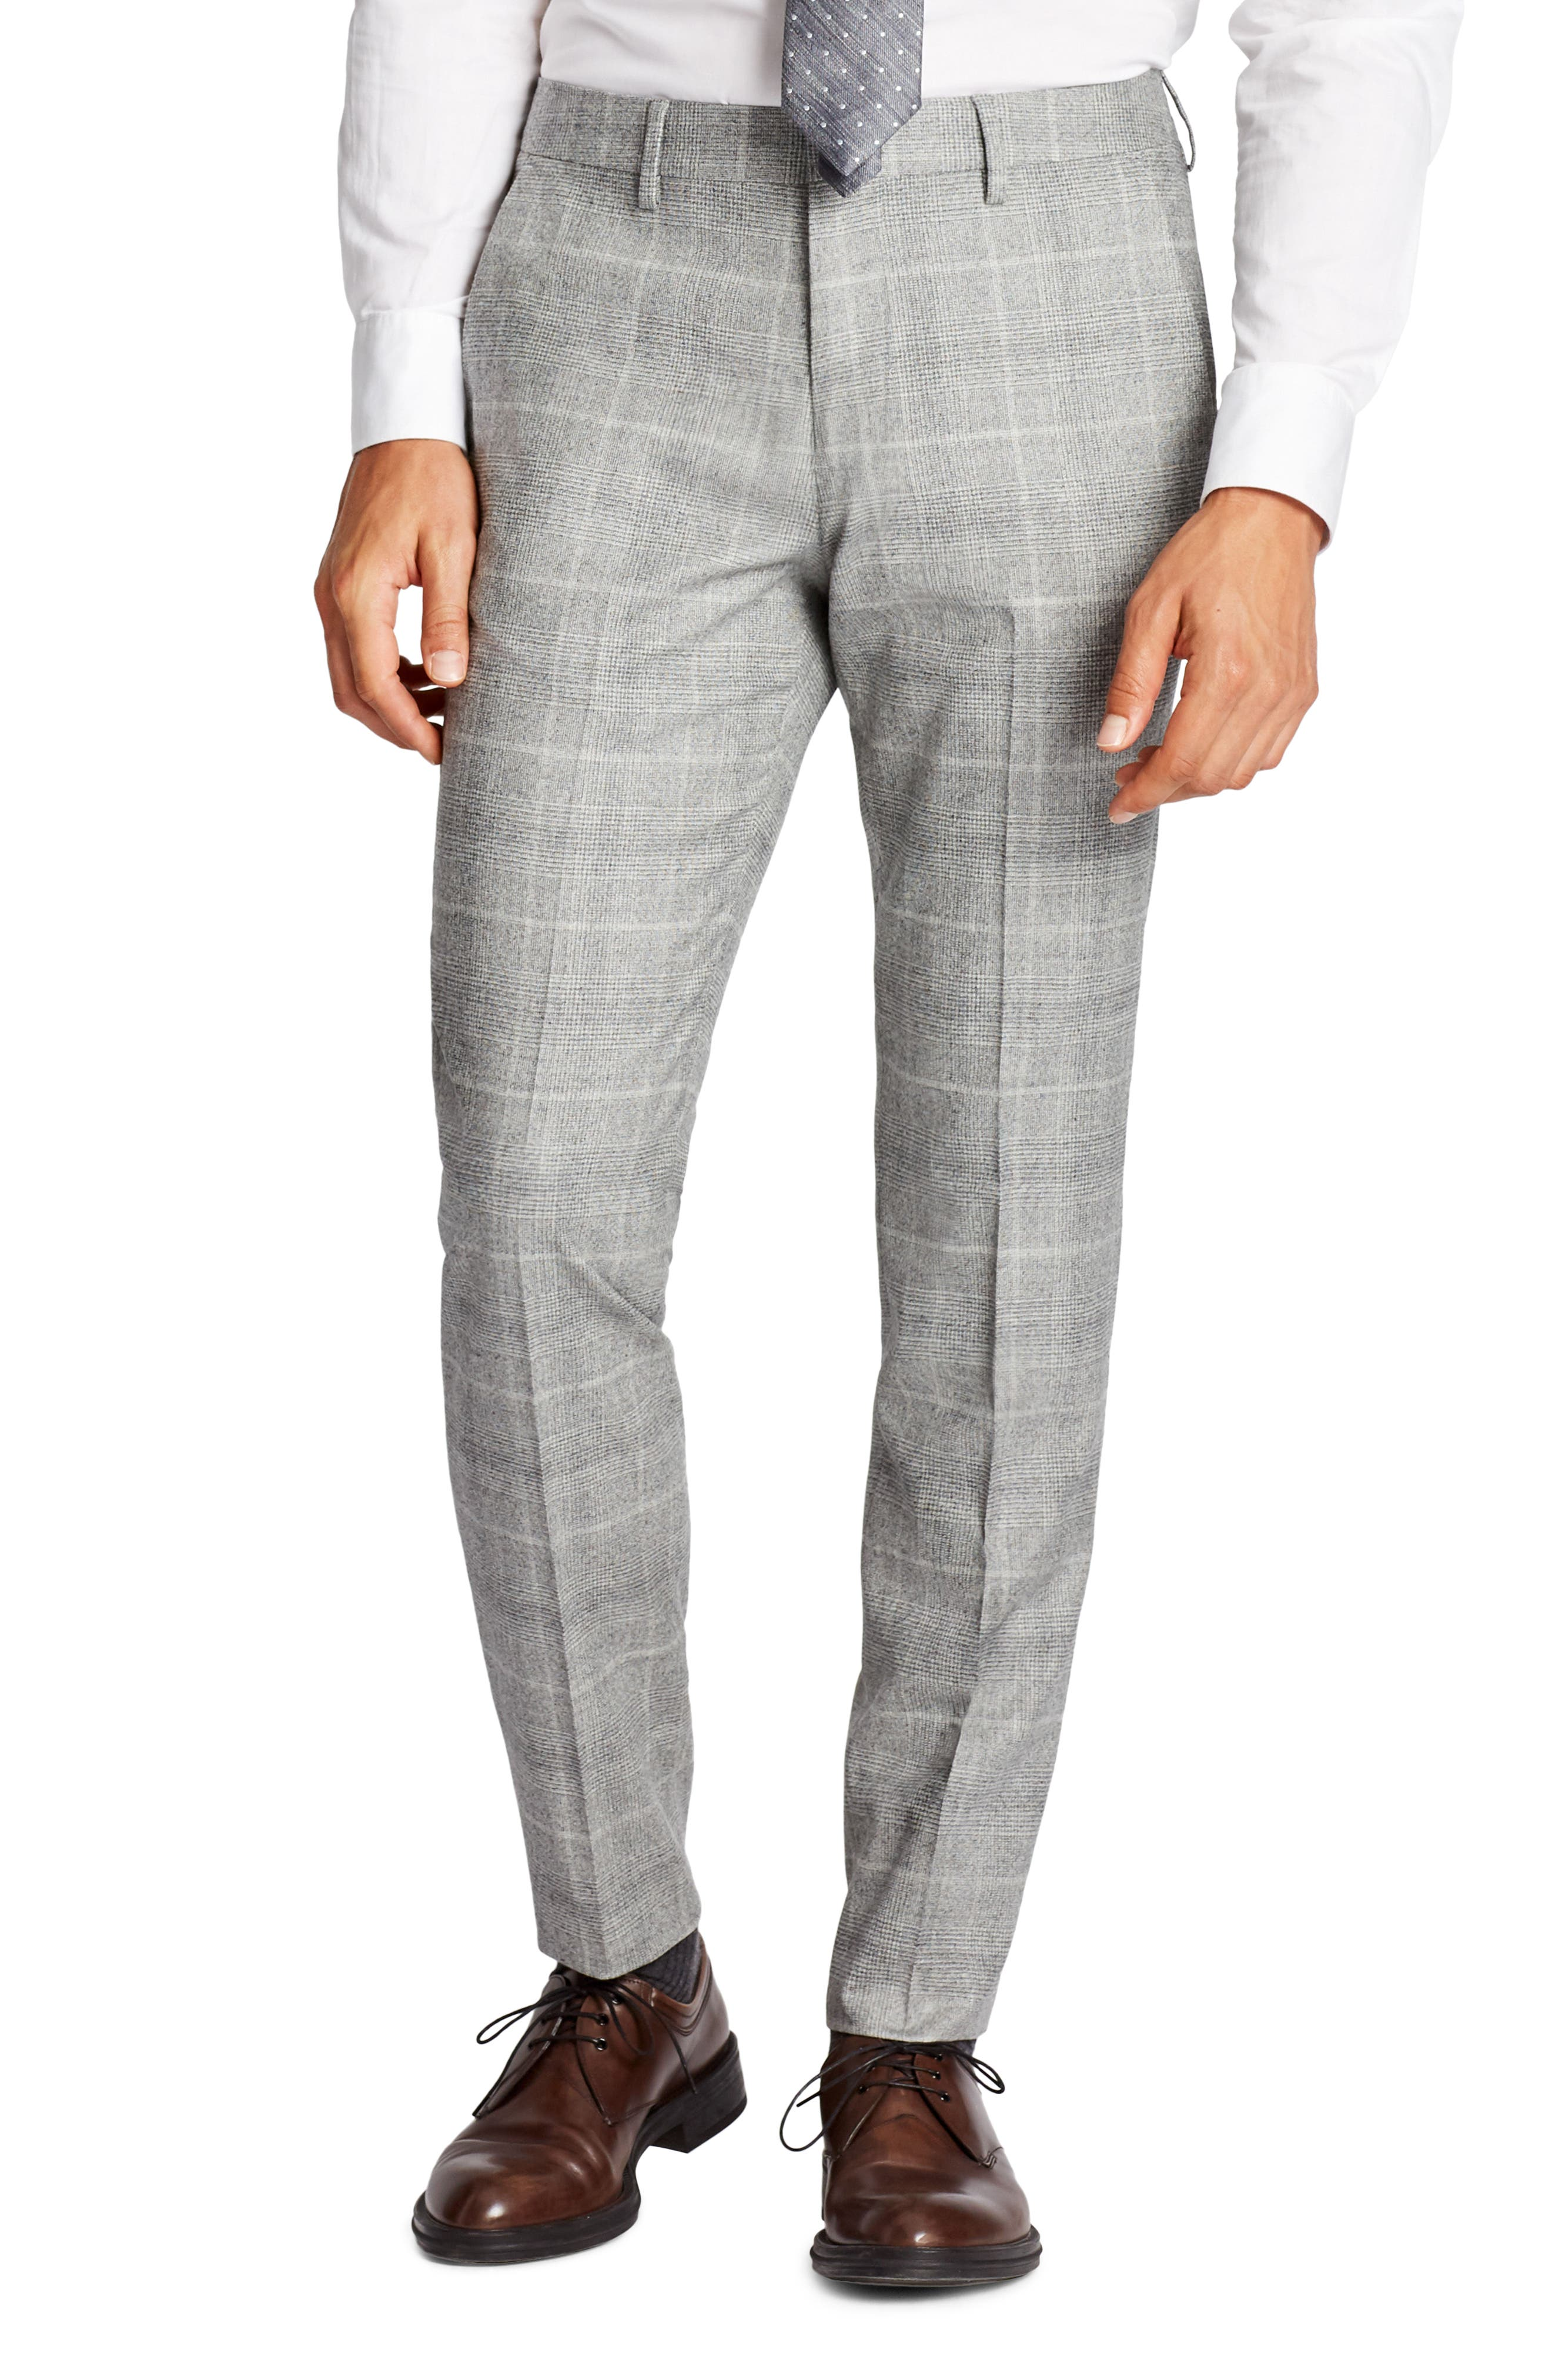 Alternate Image 1 Selected - Bonobos Jetsetter Flat Front Plaid Stretch Wool Trousers